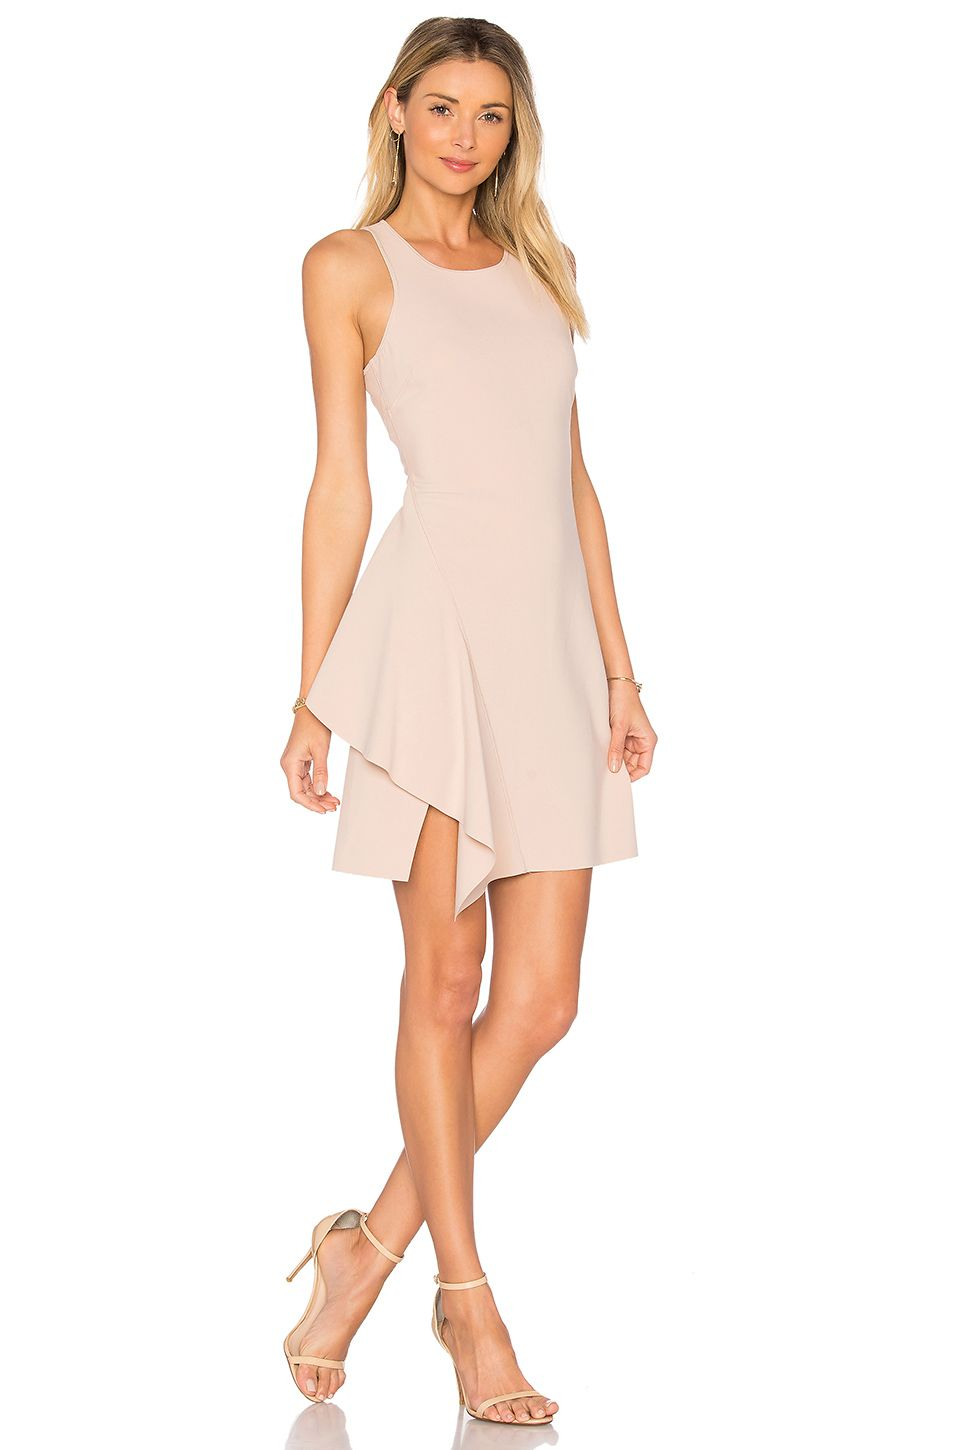 Pictures of dresses to wear to a wedding